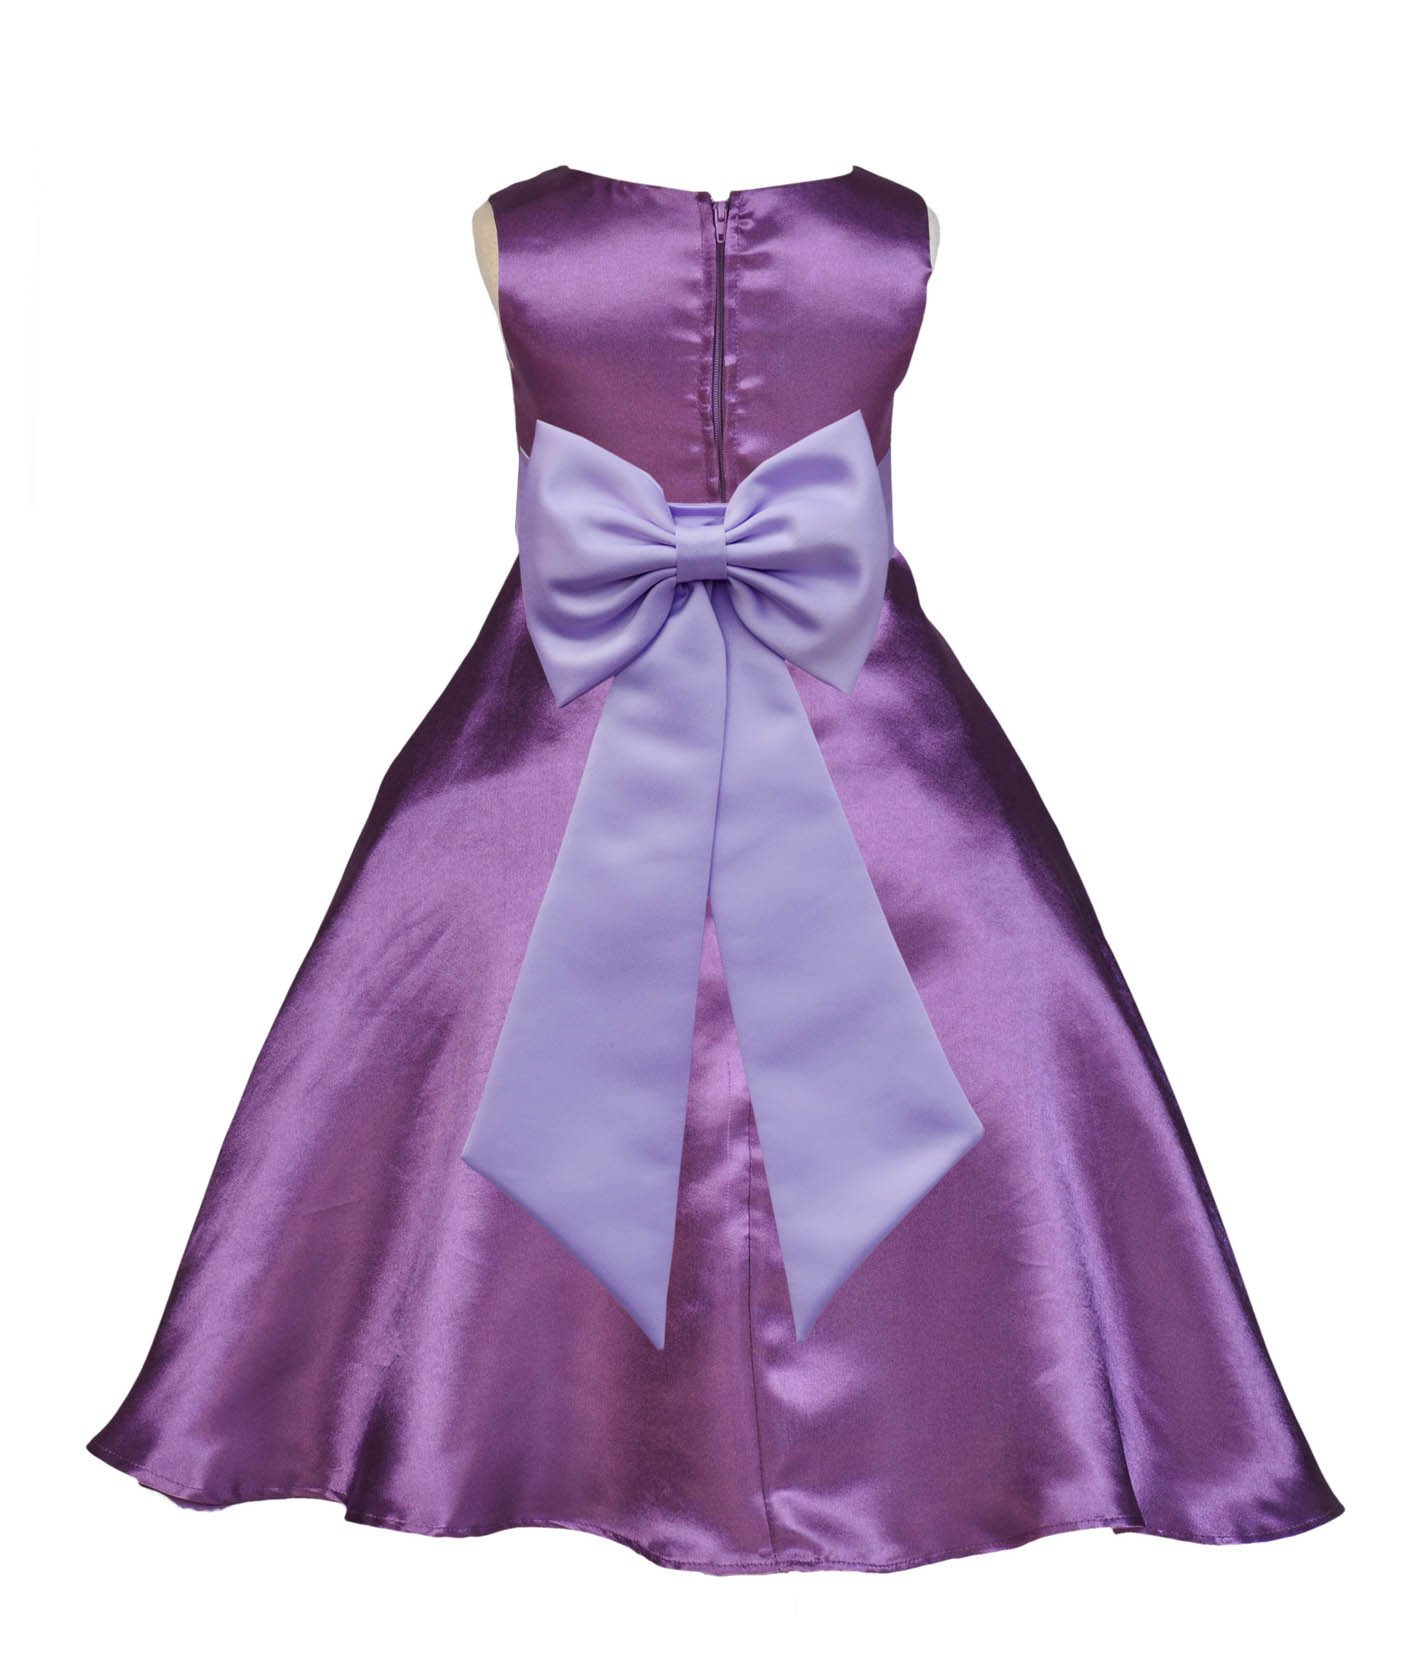 Lilac dress for wedding  Purple ALine Satin Flower Girl Dress Wedding Pageant Communion